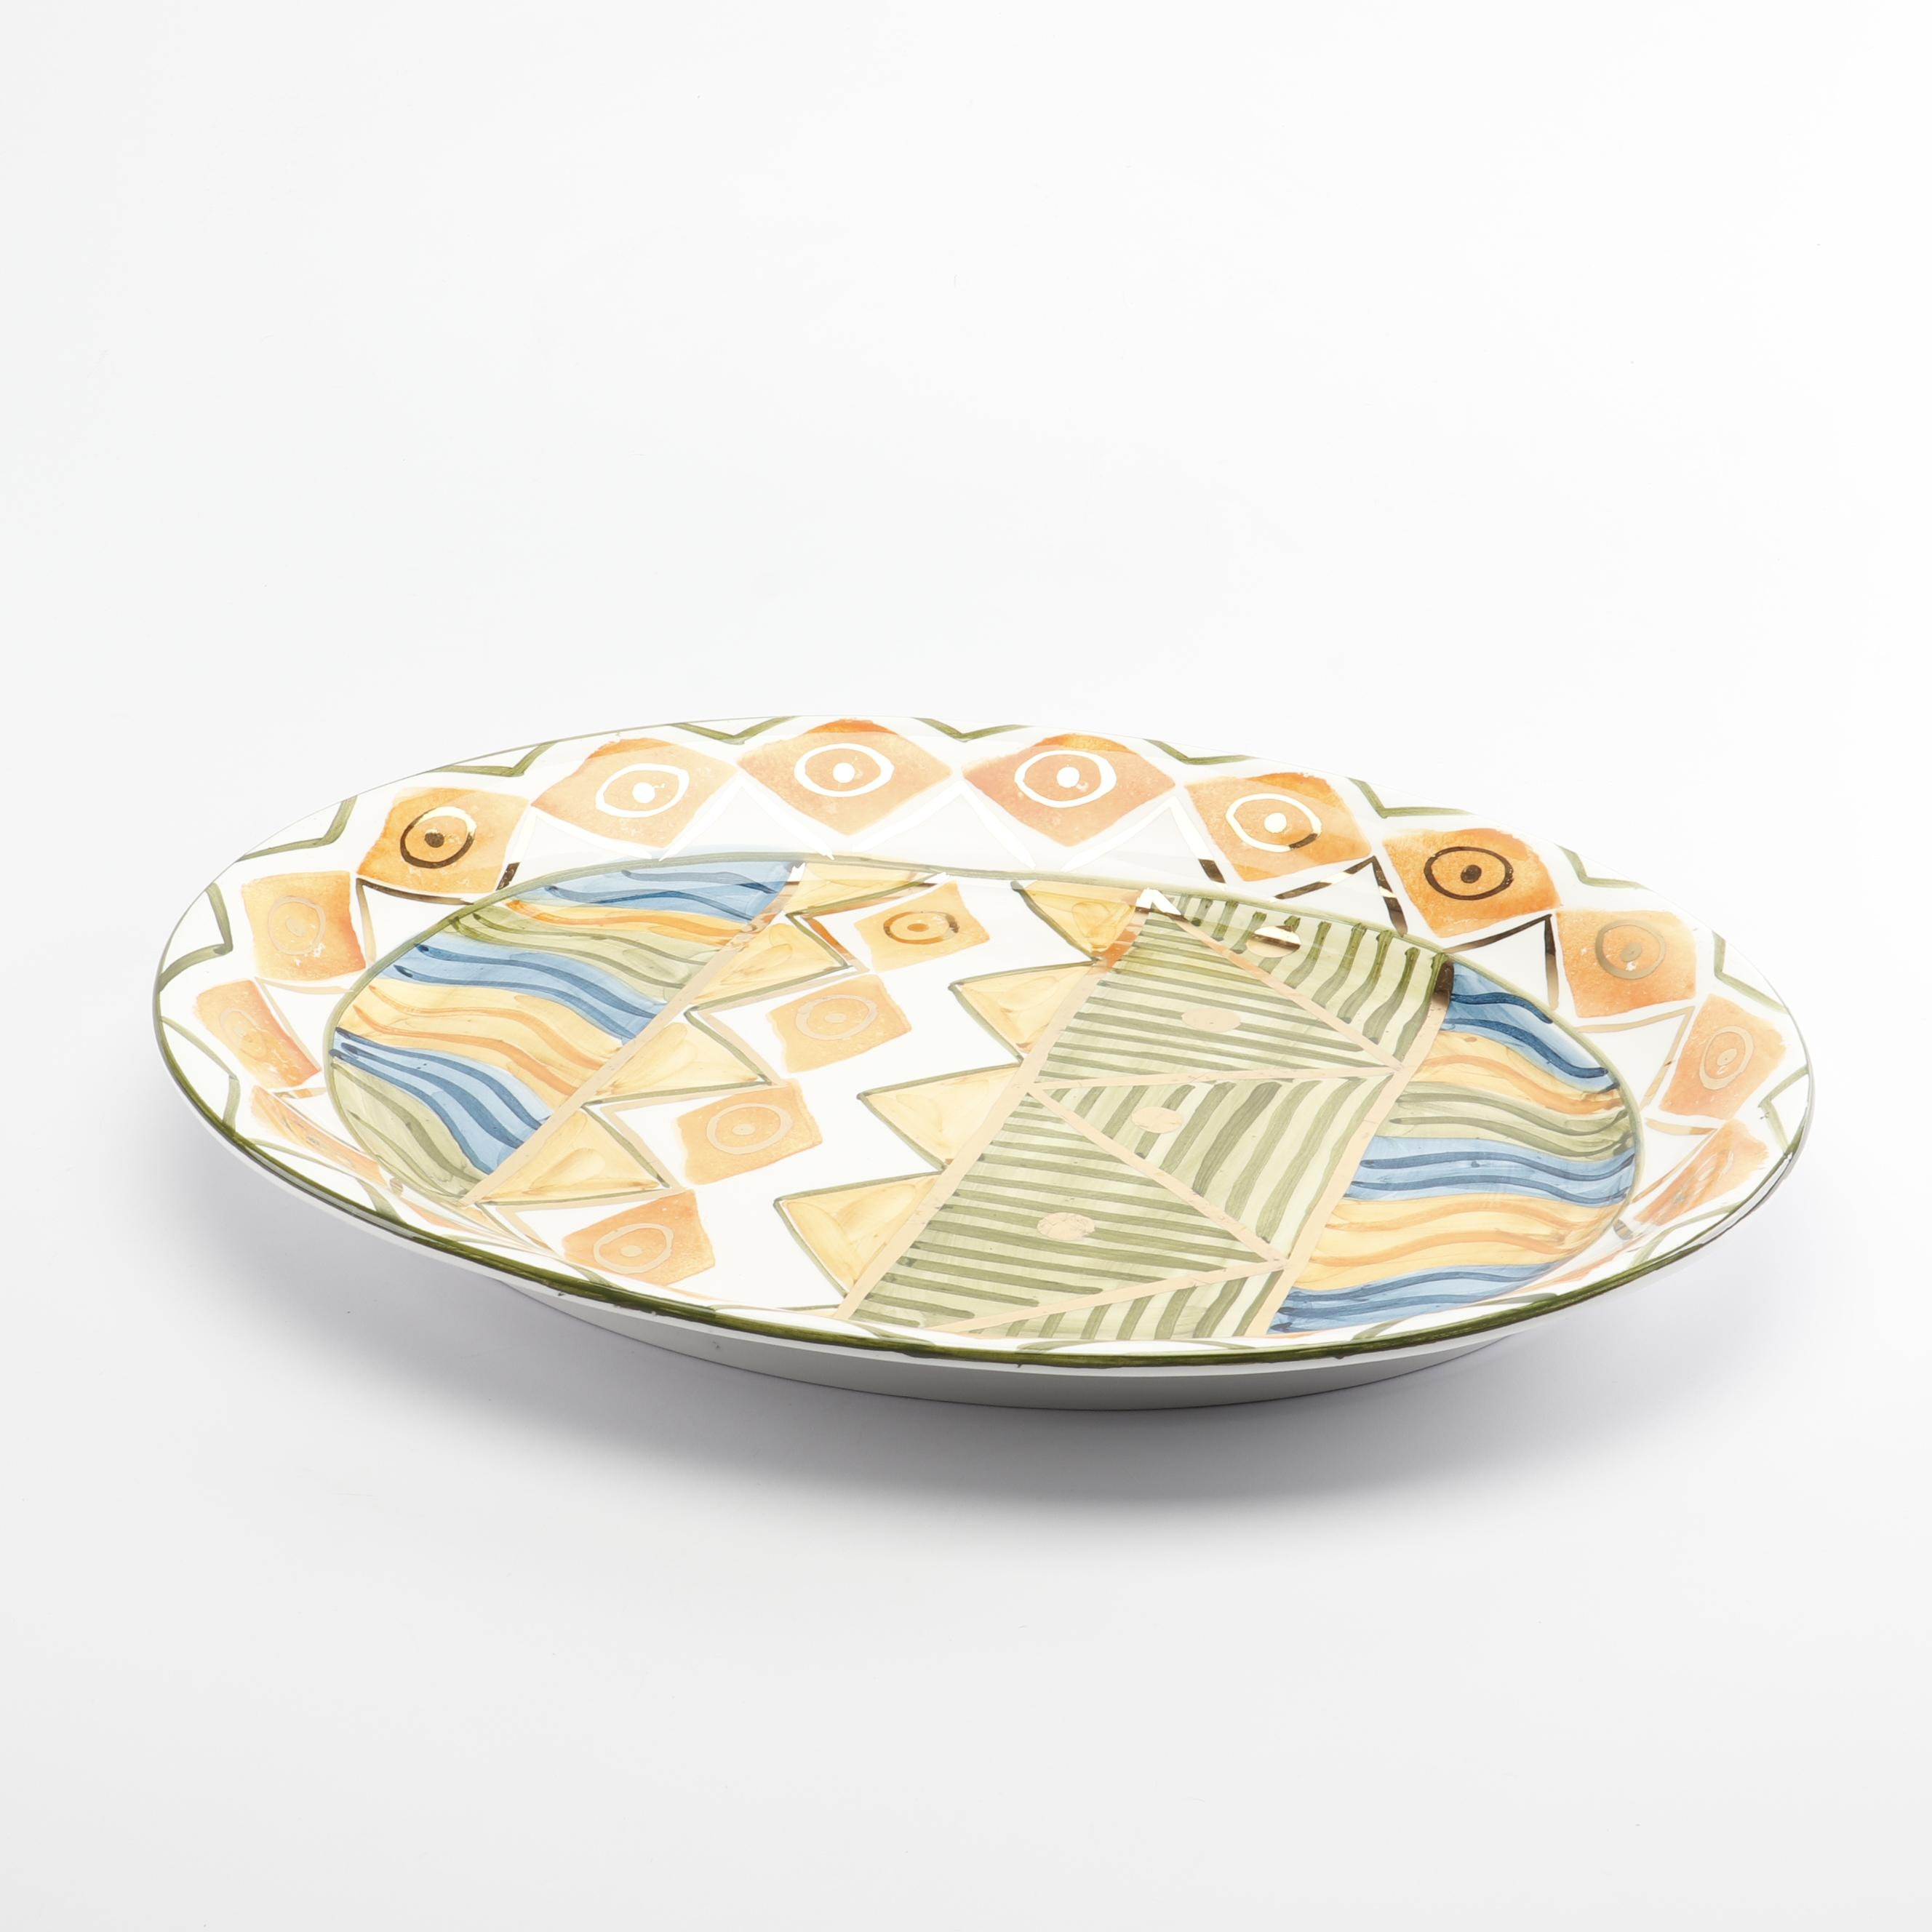 Bloomingdale's Main Course Hand-Painted Ceramic Serving Platter